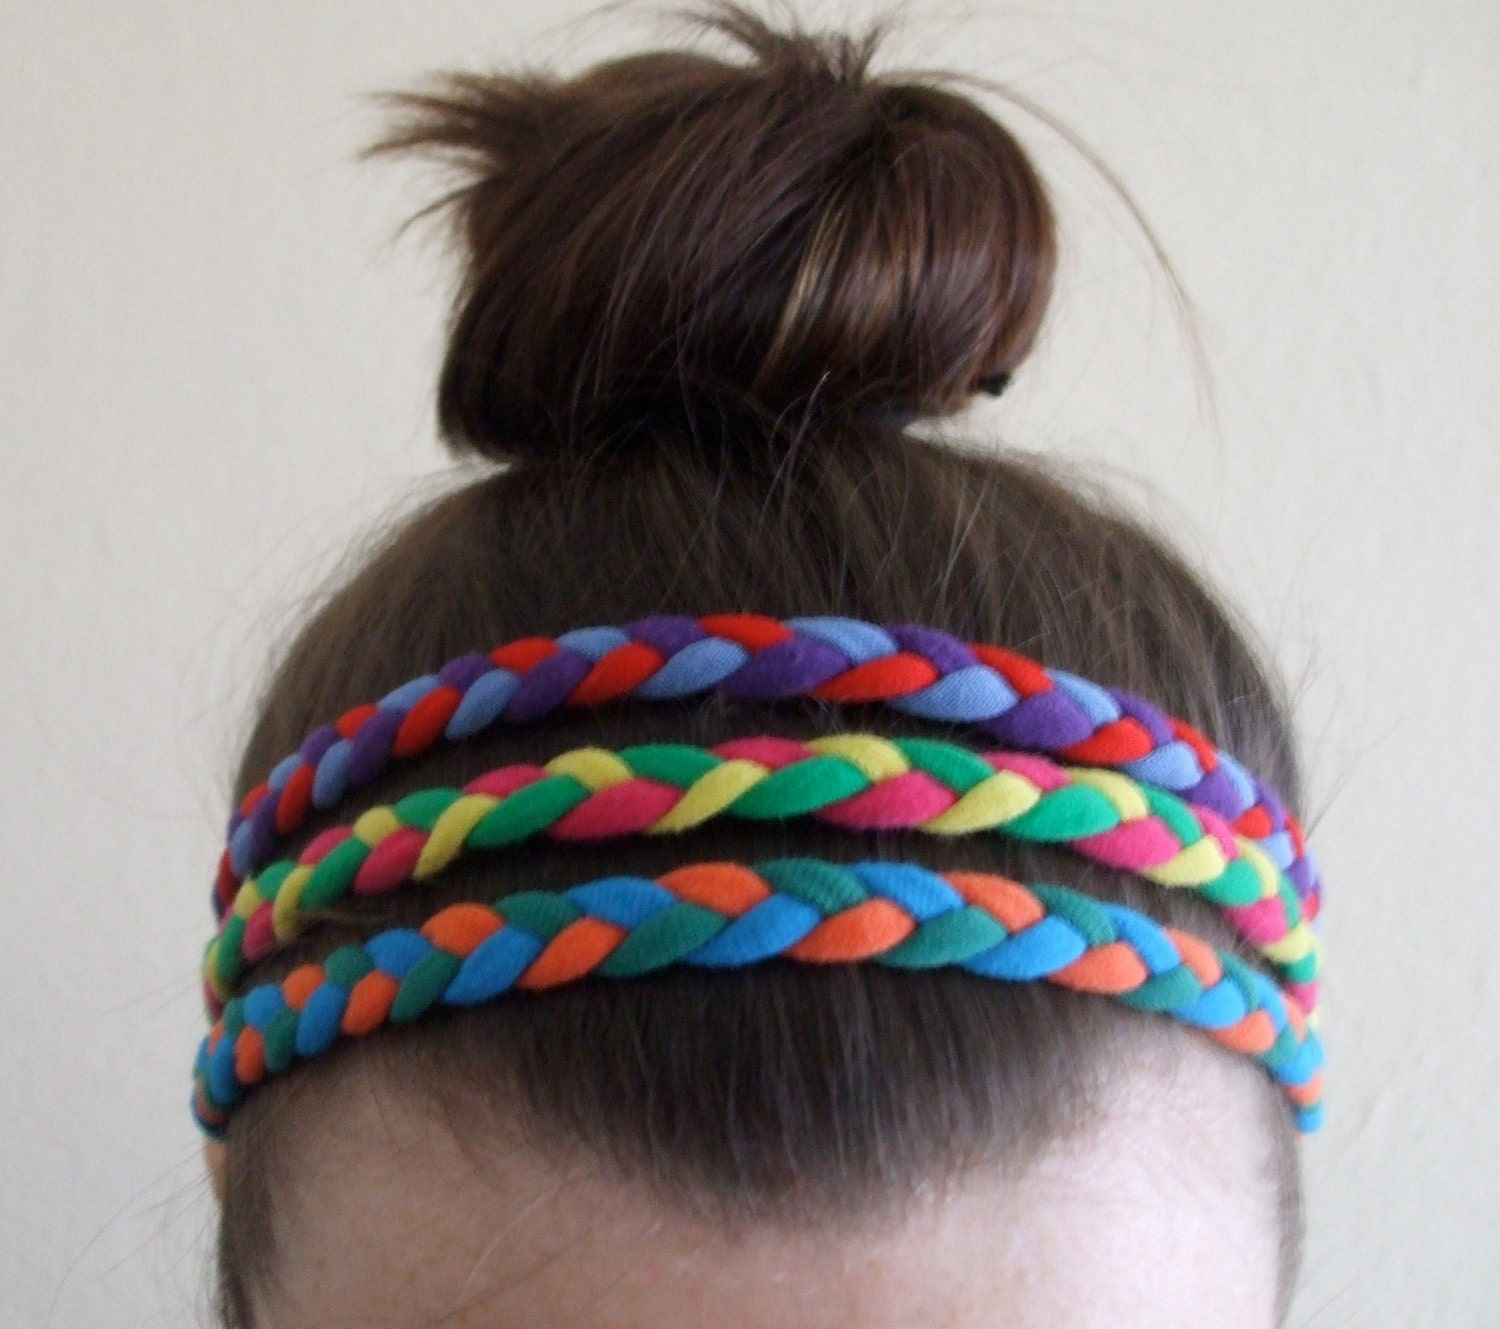 Find great deals on eBay for braided headband. Shop with confidence.